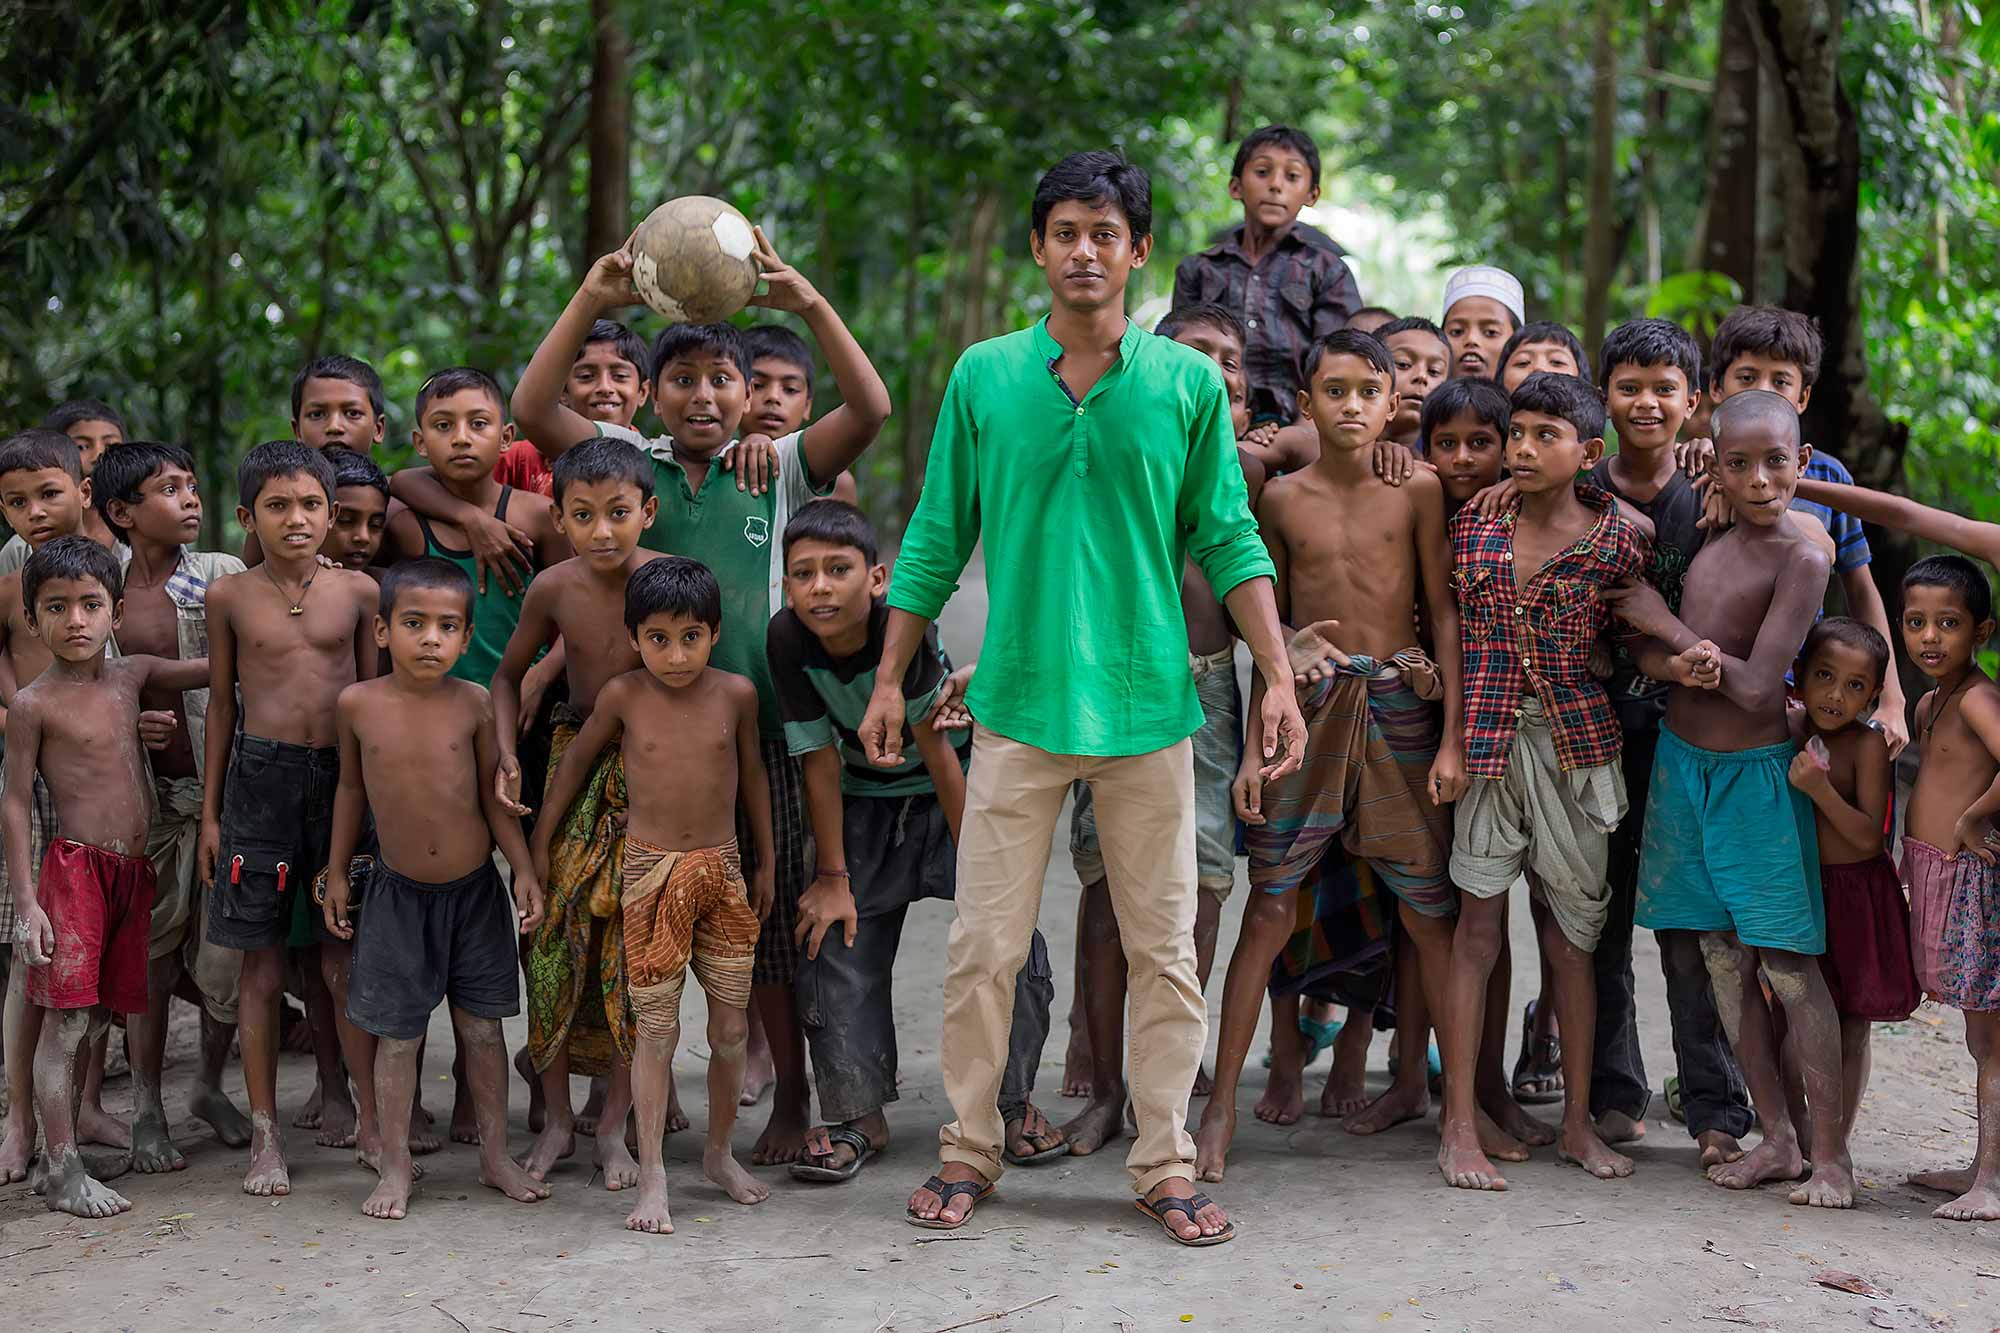 Children ready to play some football in Galachipa, Bangladesh. © Ulli Maier & Nisa Maier